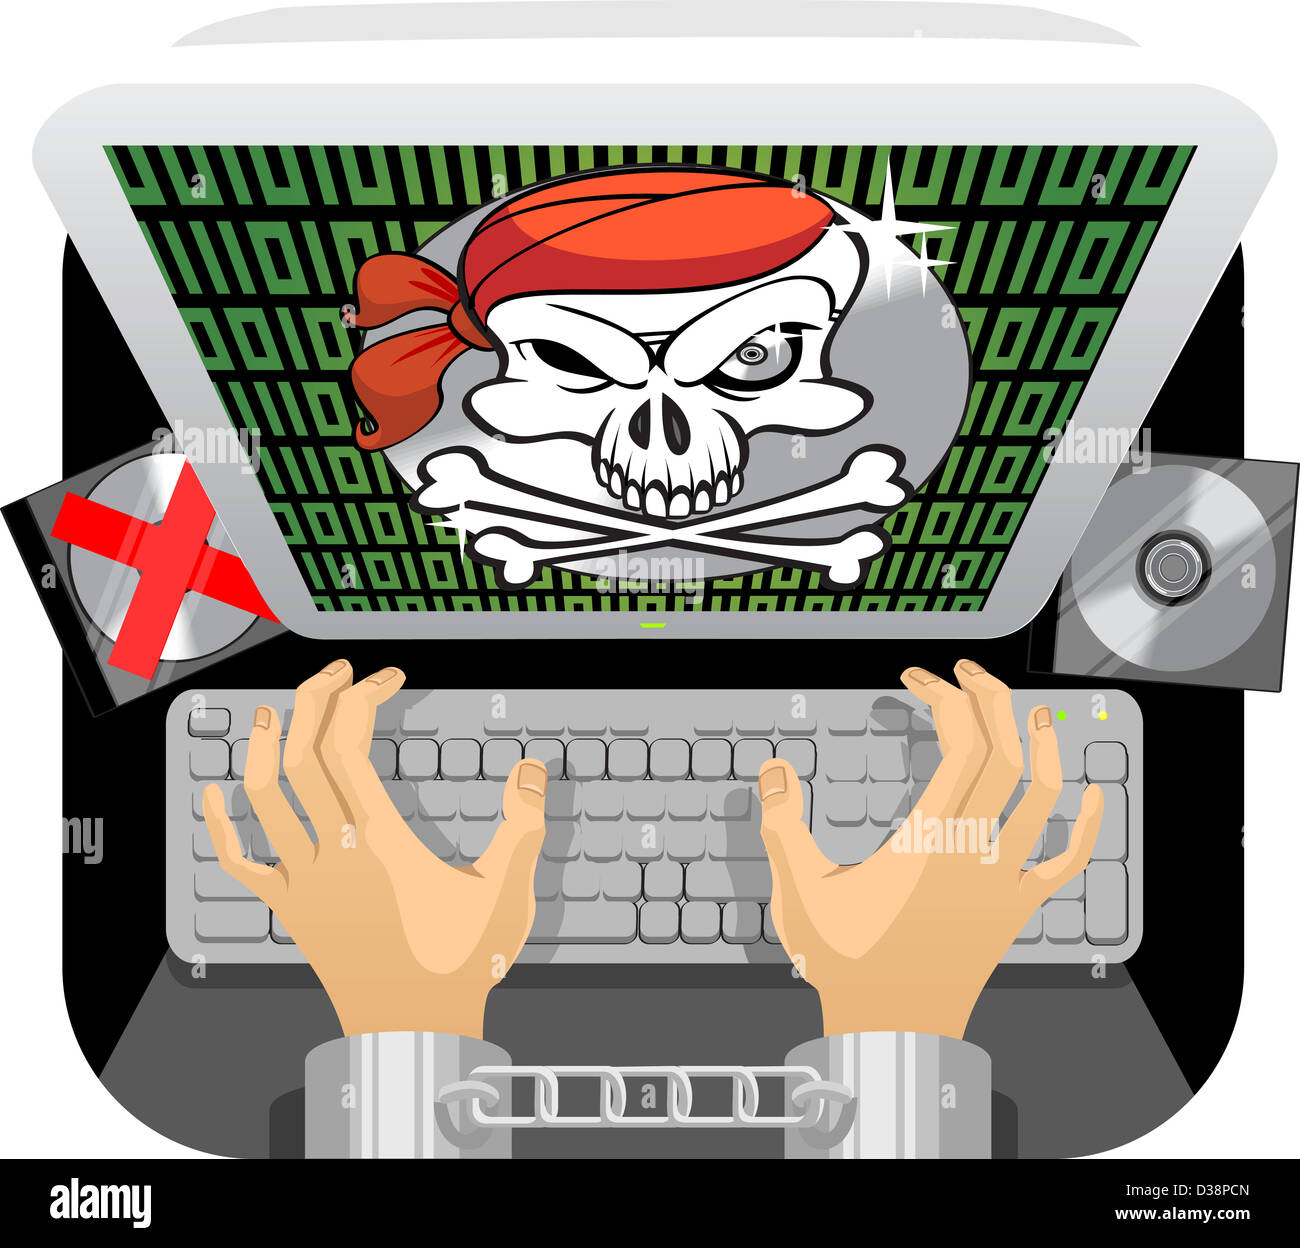 Handcuffed person's hand using a keyboard with anti piracy message flashed on the computer screen - Stock Image